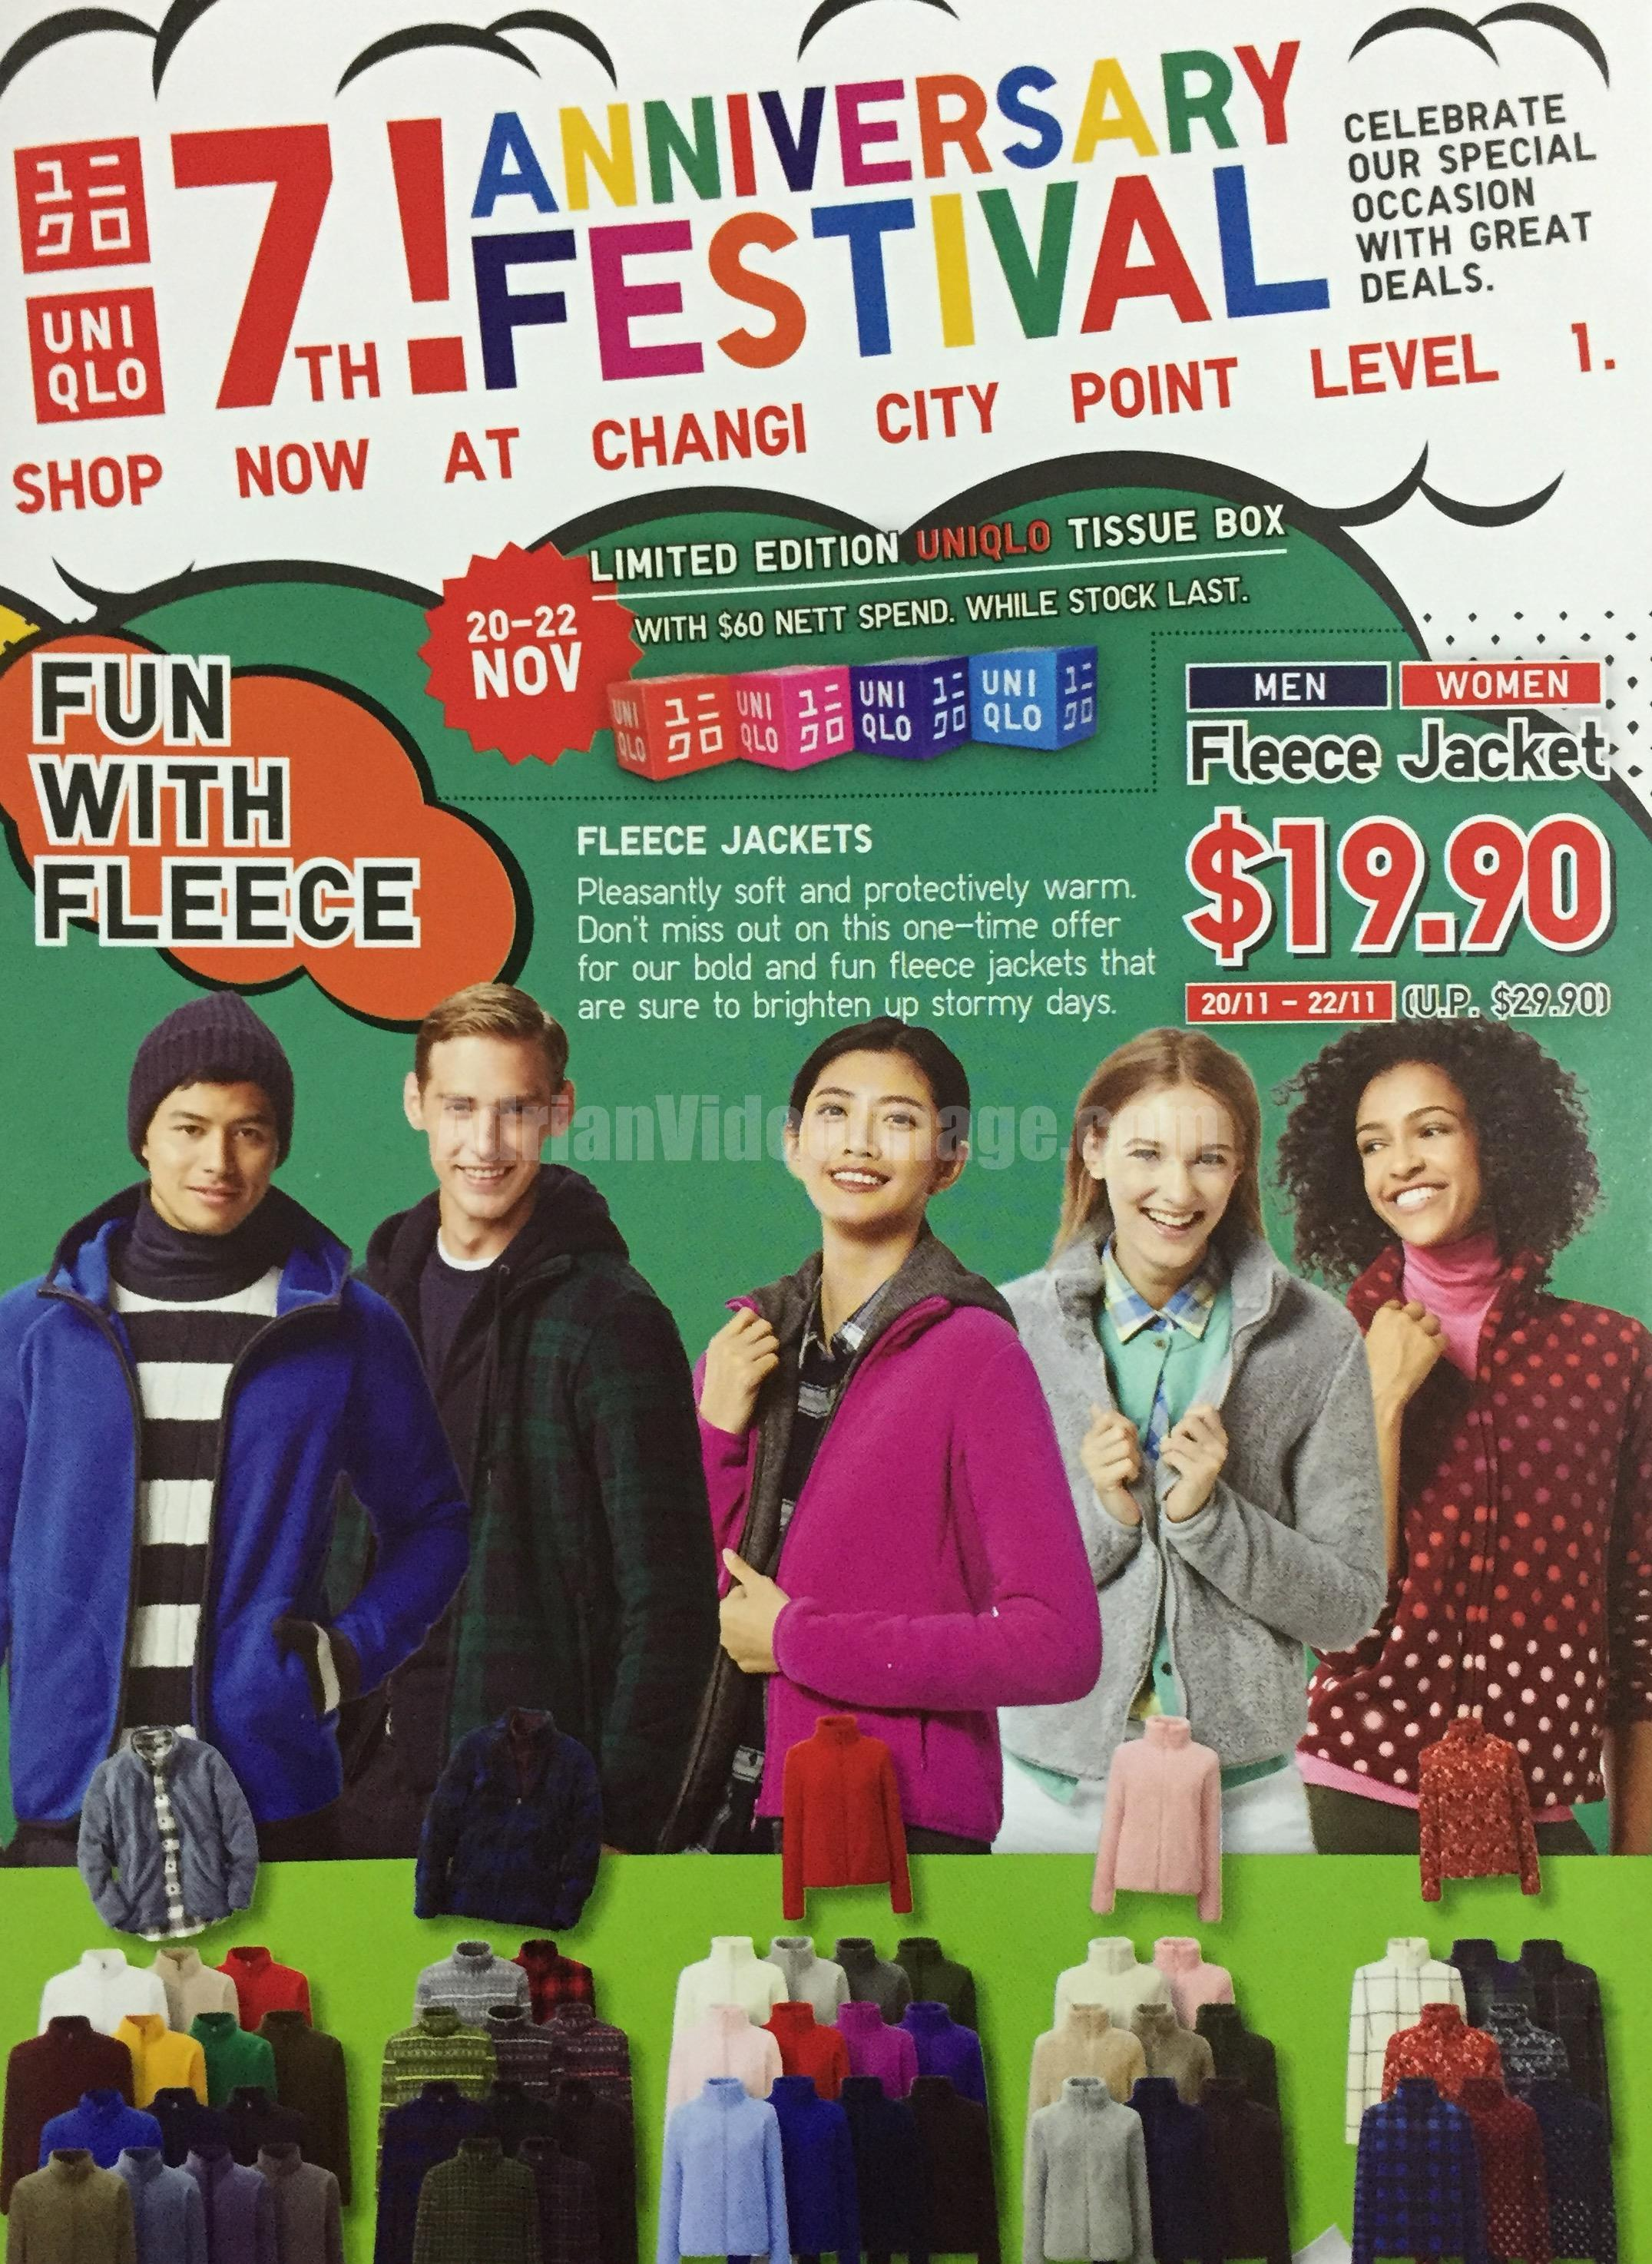 [pg1] UNIQLO Singapore 7th Anniversary Festival Sale 2015 @ Changi City Point